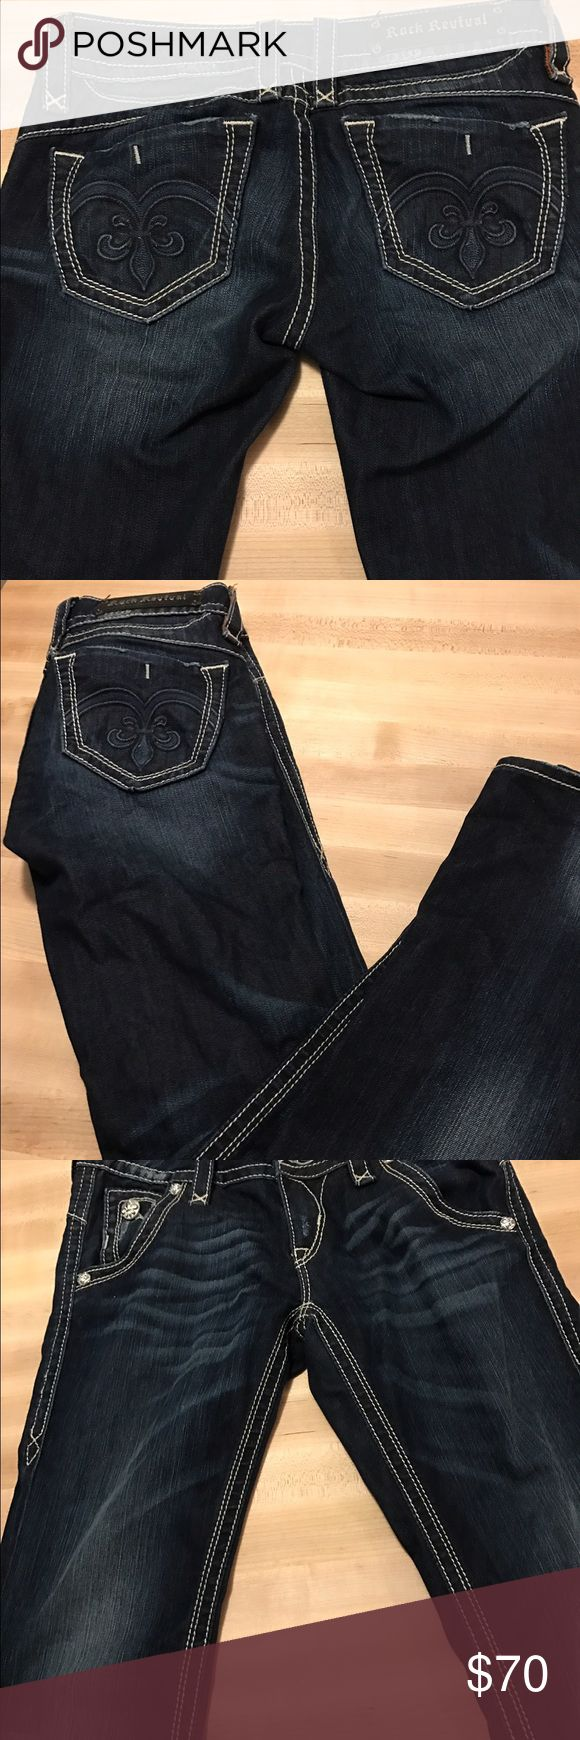 Rock Revival Jeans Size 29 inseam 33 new without tags. Rock Revival Jeans